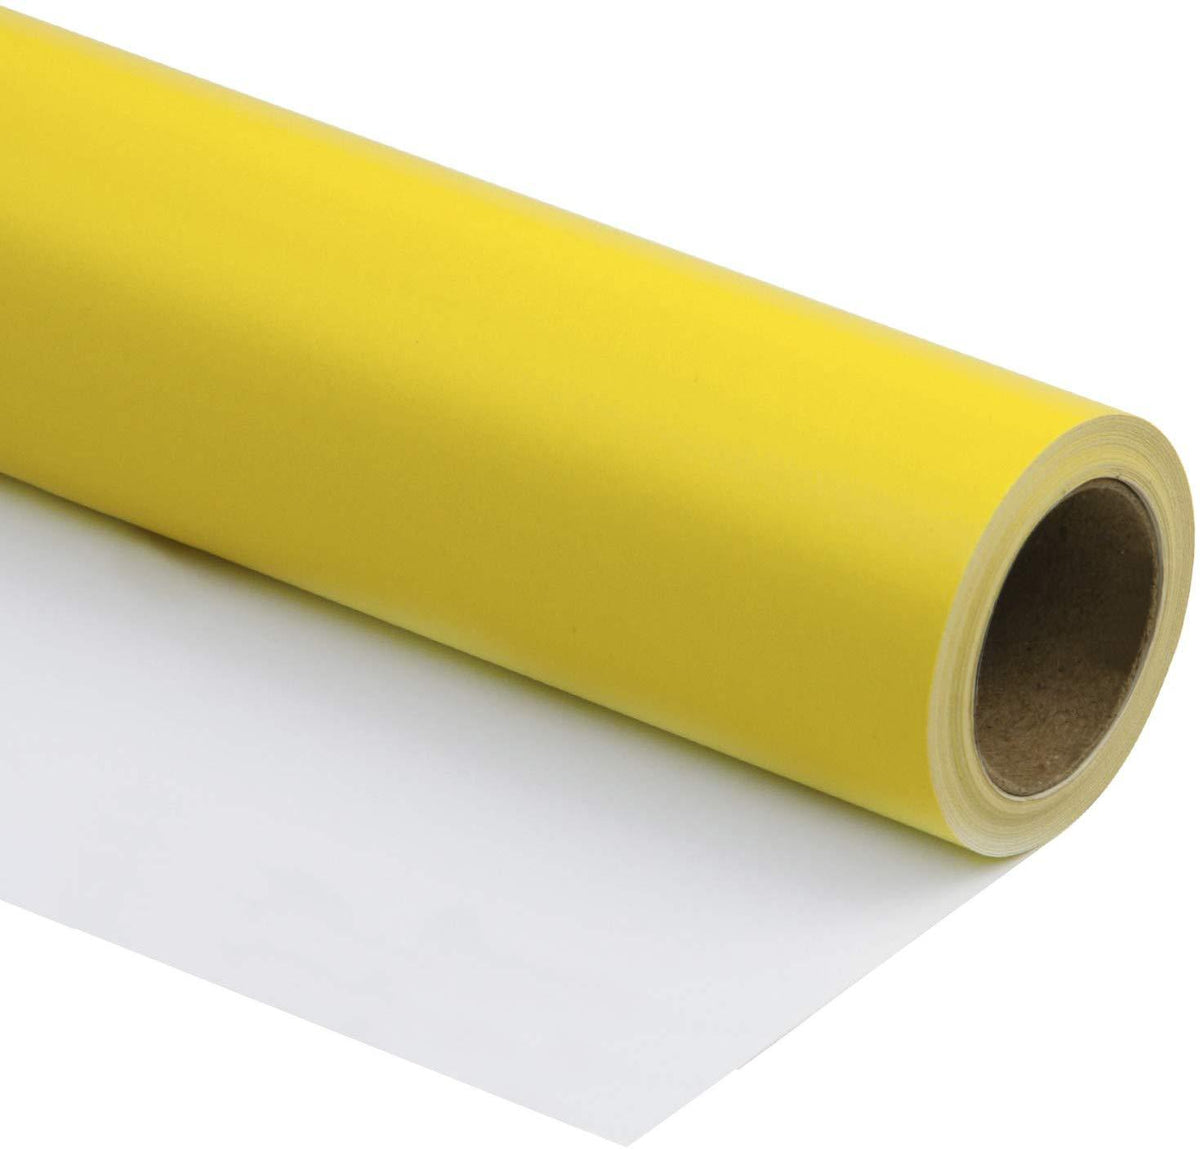 wrapaholic-glossy-yellow-gift-wrap-roll-m